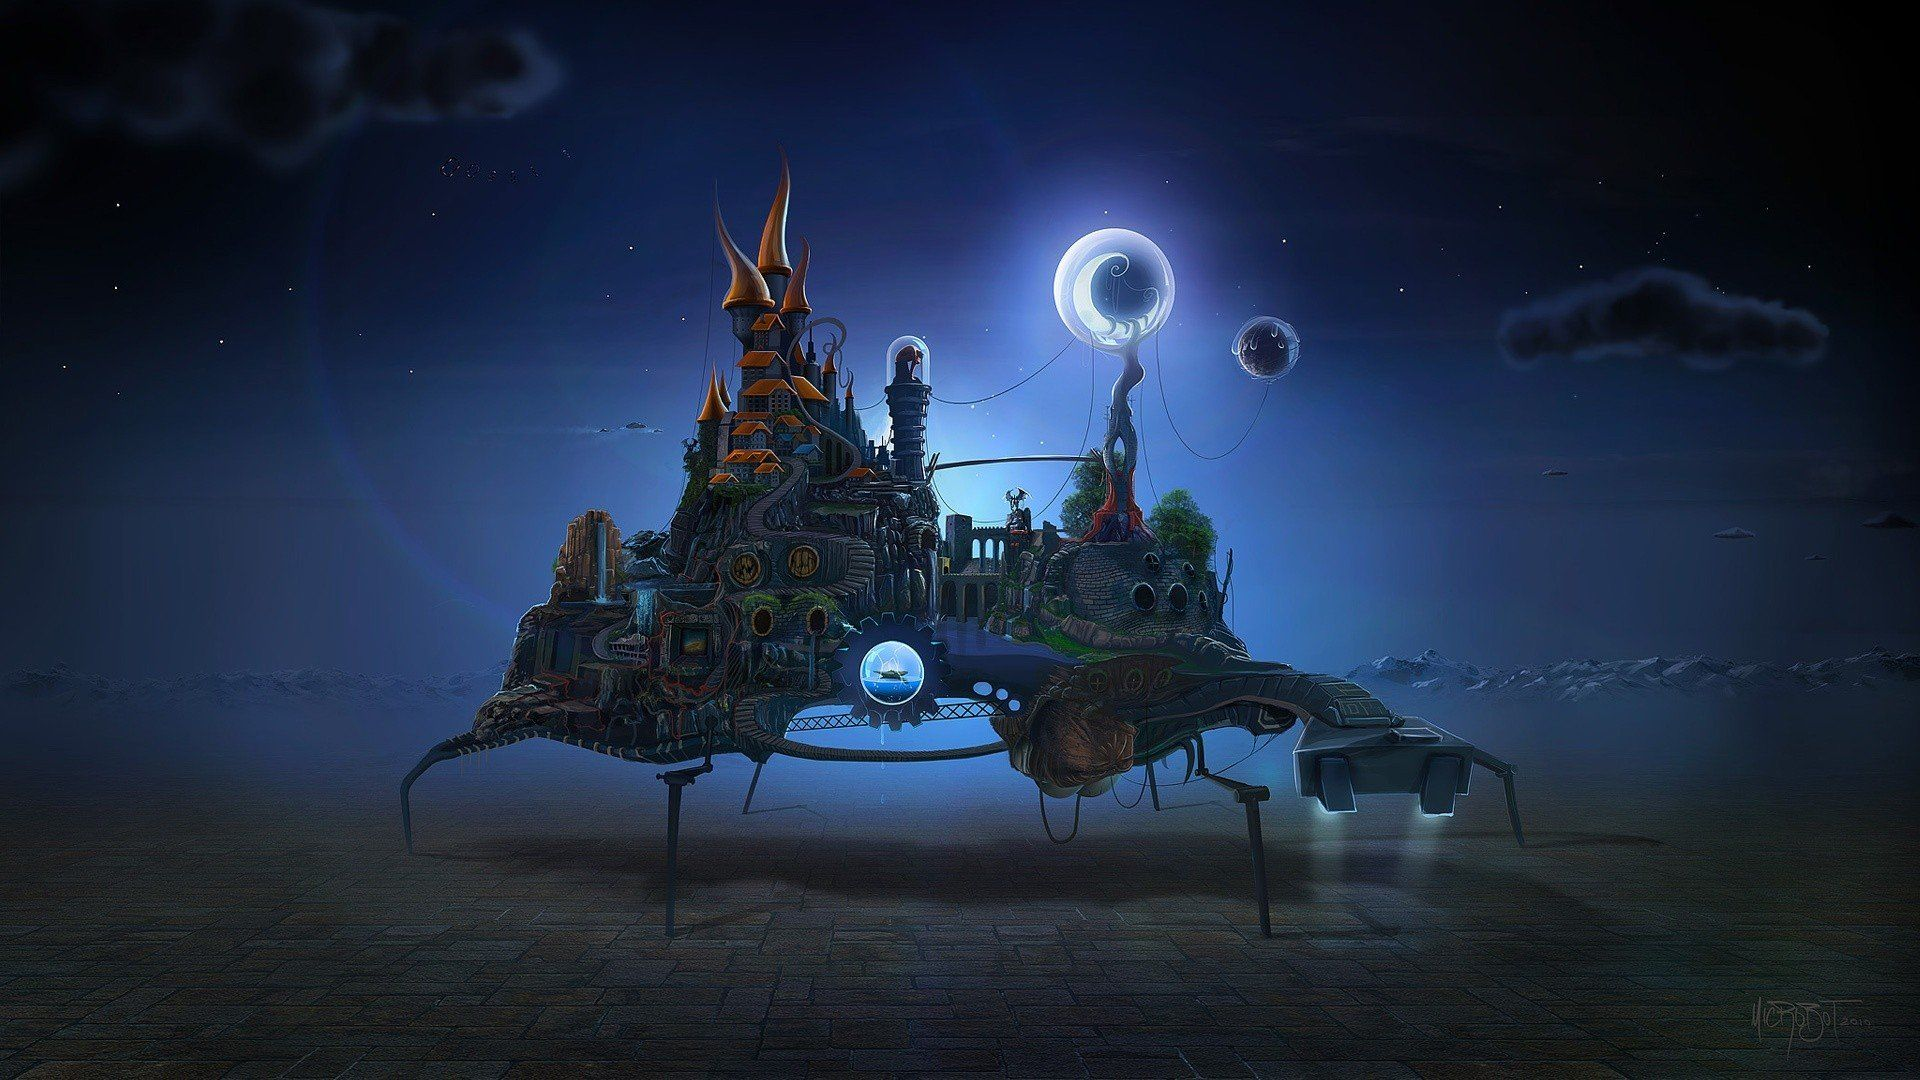 1920x1080 David Fuhrer, Night, Moon, Castle, Gears, Waterfall, Stairs, Surreal ...